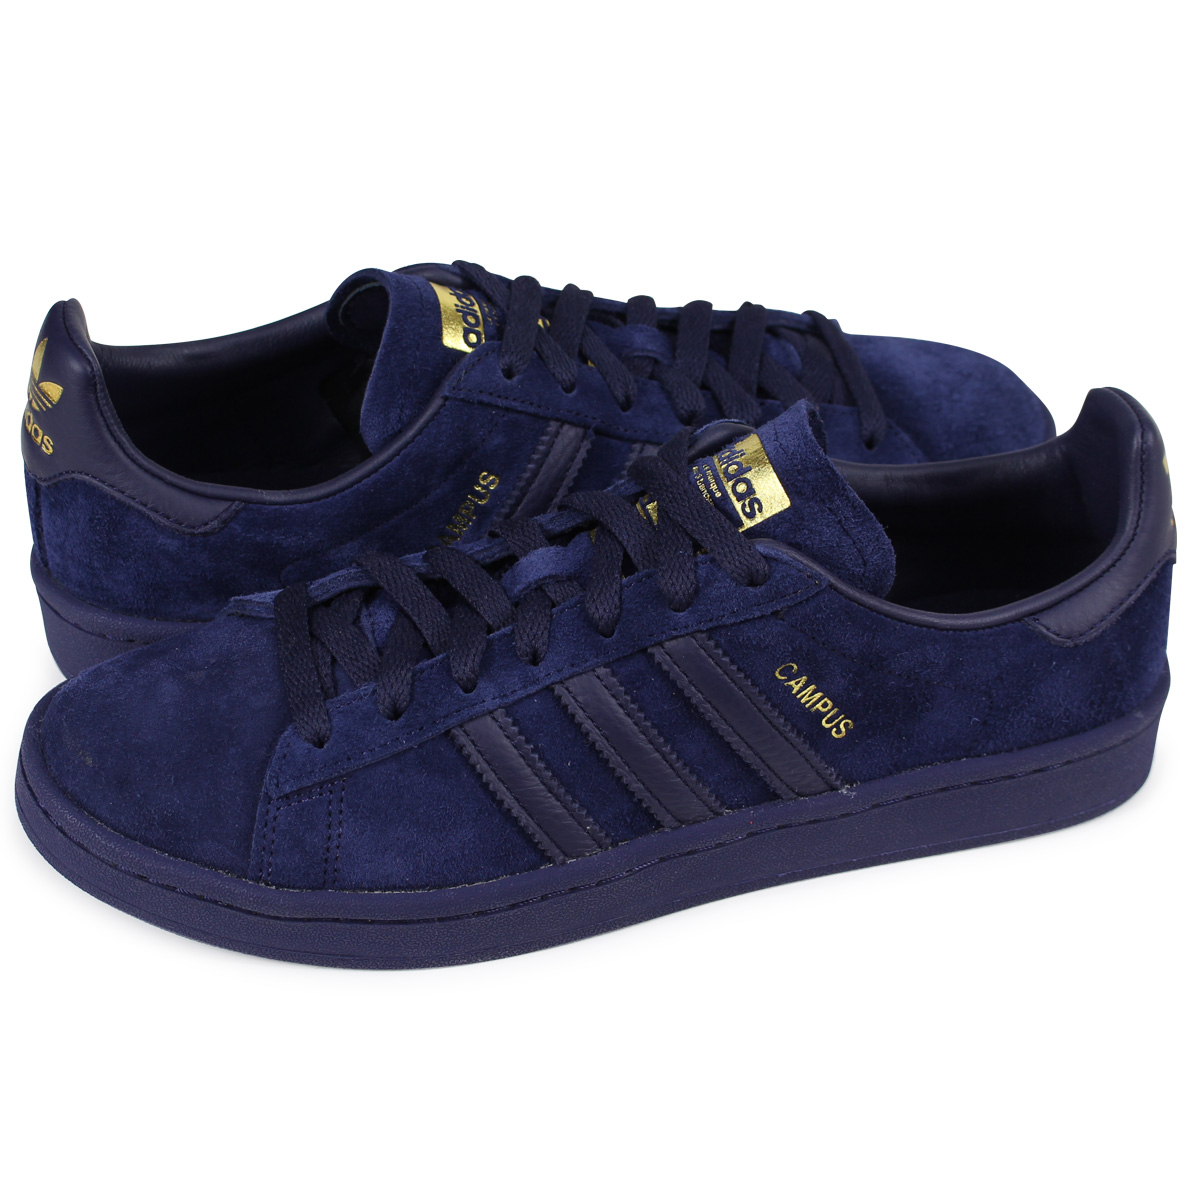 chaussures de sport 4463e 06d55 adidas Originals CAMPUS Adidas campus sneakers men gap Dis CQ2045 navy  originals [load planned Shinnyu load in reservation product 1/18 containing]